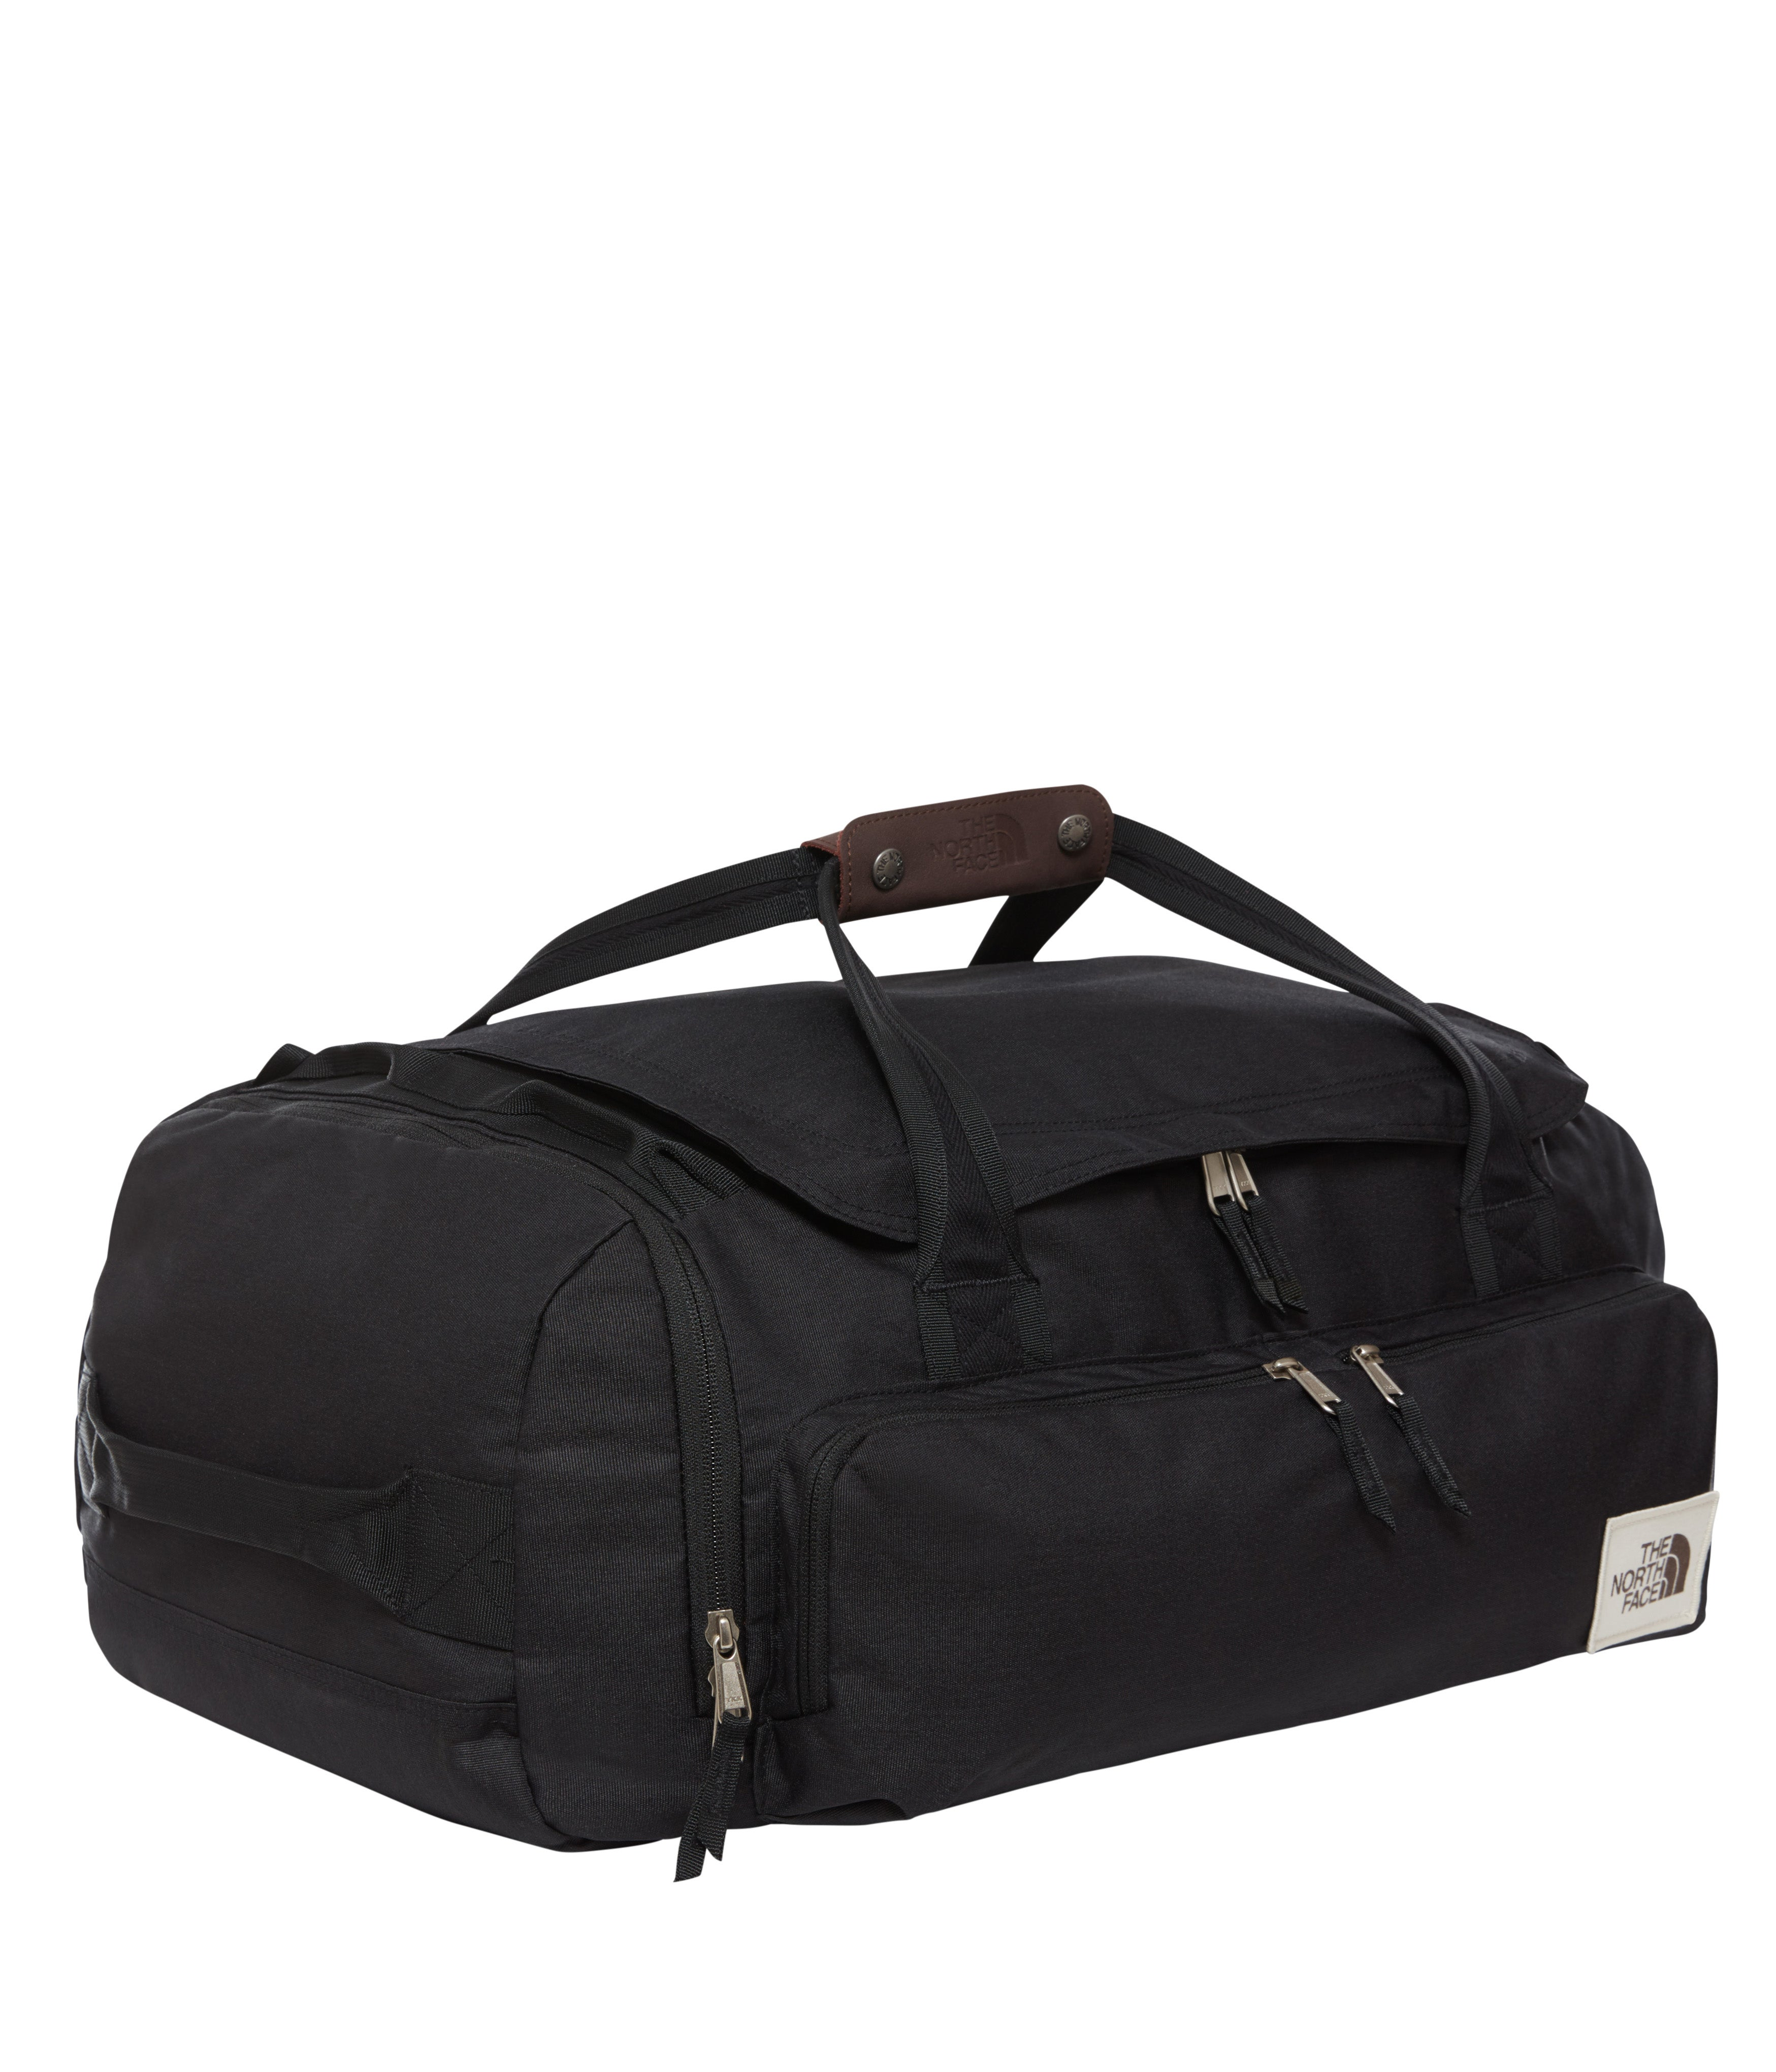 7ac5a757c56f North Face Berkeley Medium Duffle Bag available from Surfdome